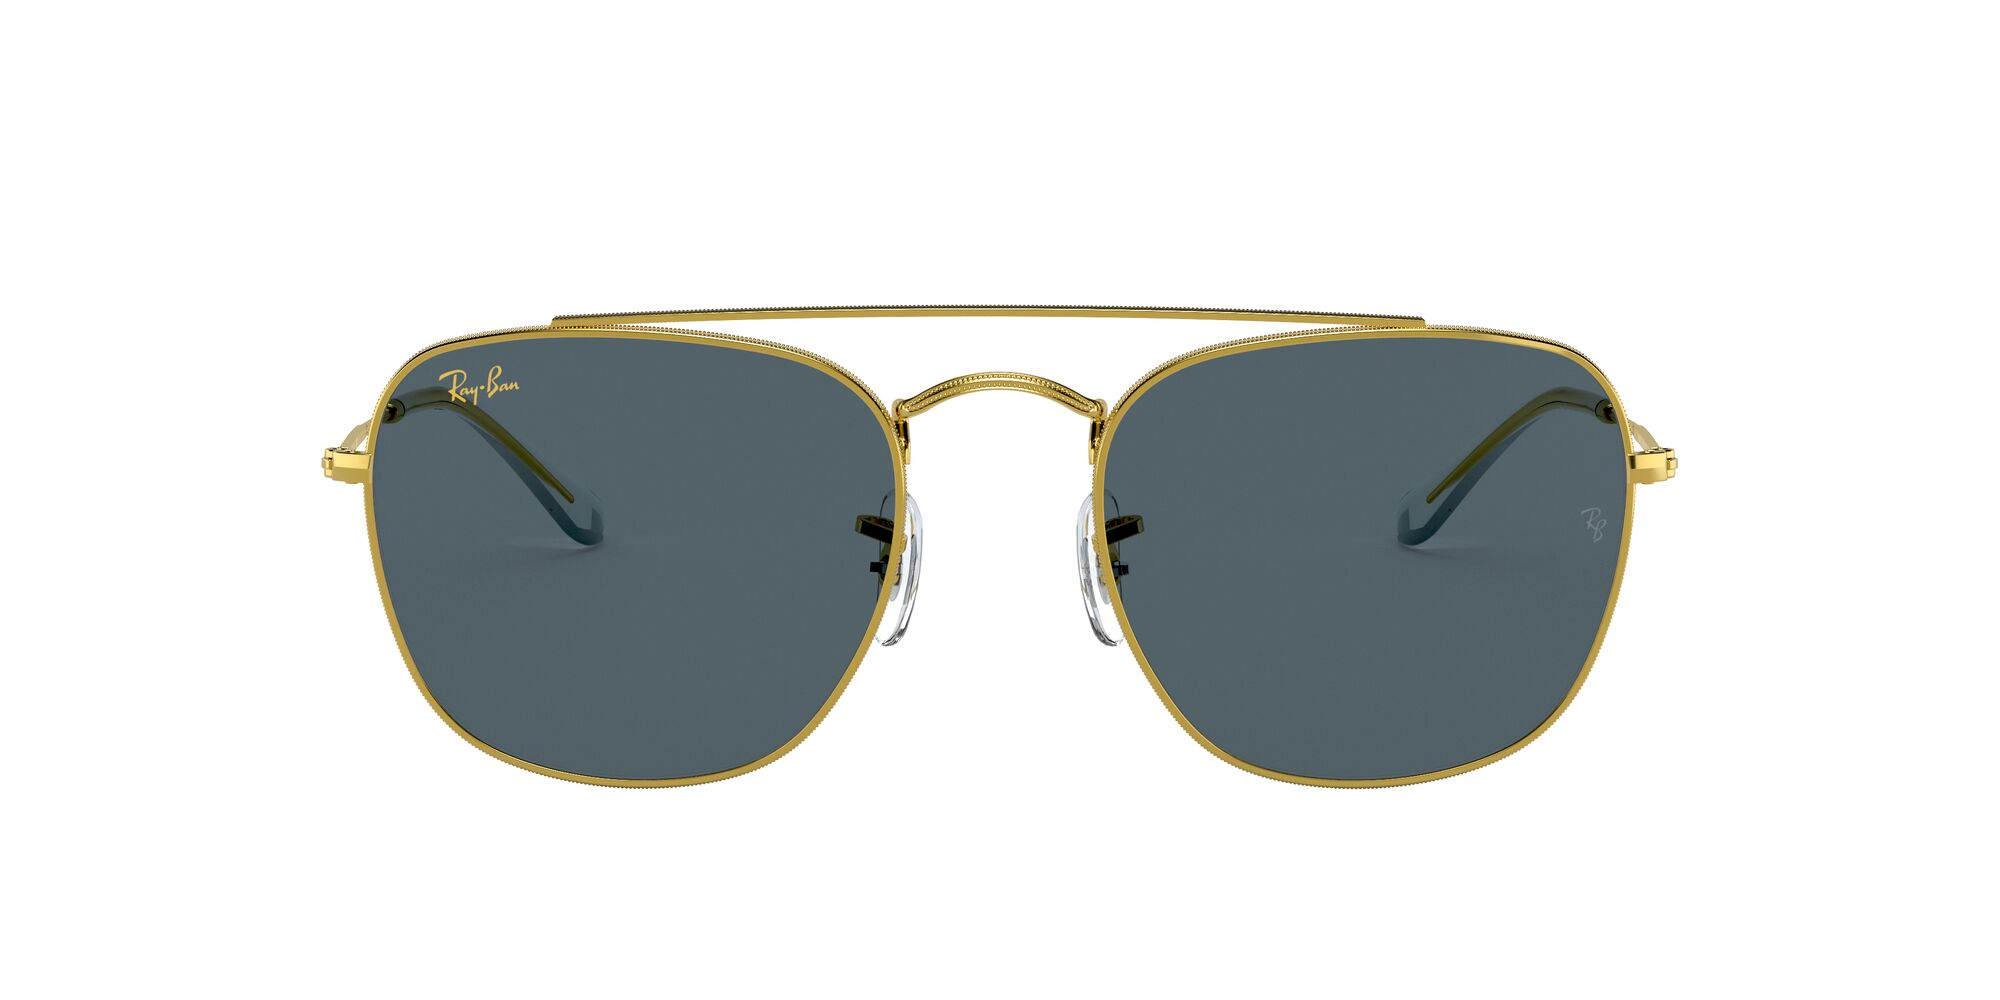 Front Ray-Ban Ray-Ban 0RB3557 9196R5 51/20 Goud/Blauw